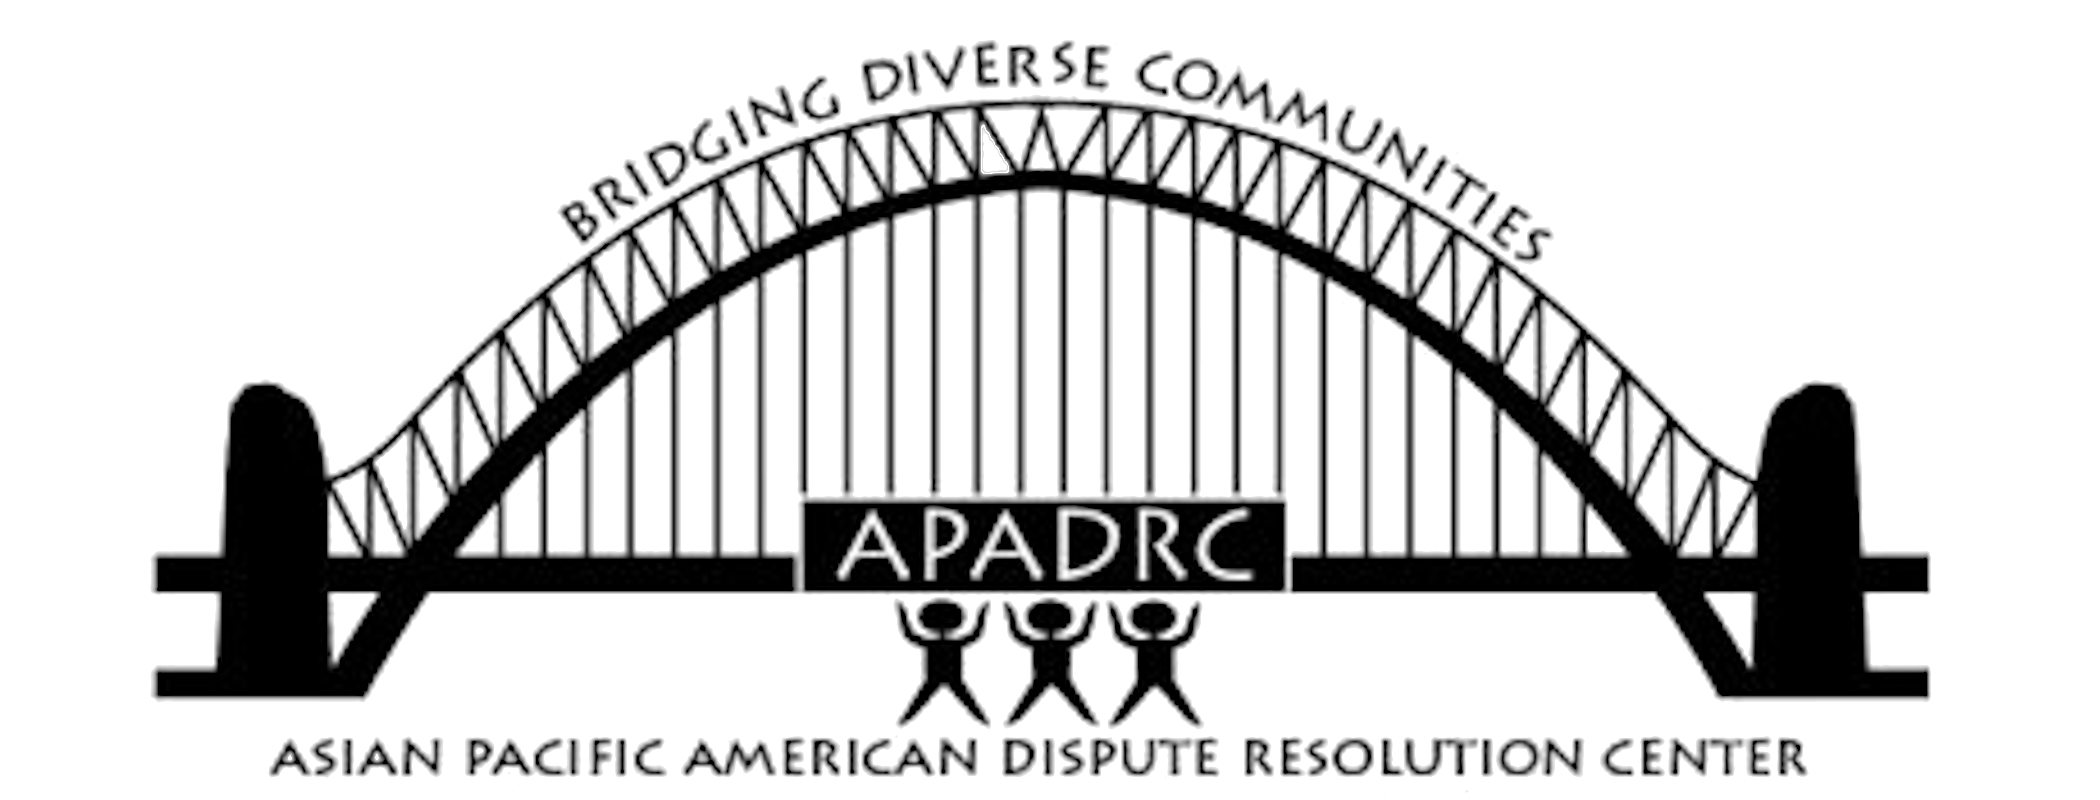 - Asian Pacific Dispute Resolution Center1145 Wilshire Blvd., Suite 100, Los Angeles 90017(213) 250-8190 | apadrc.org